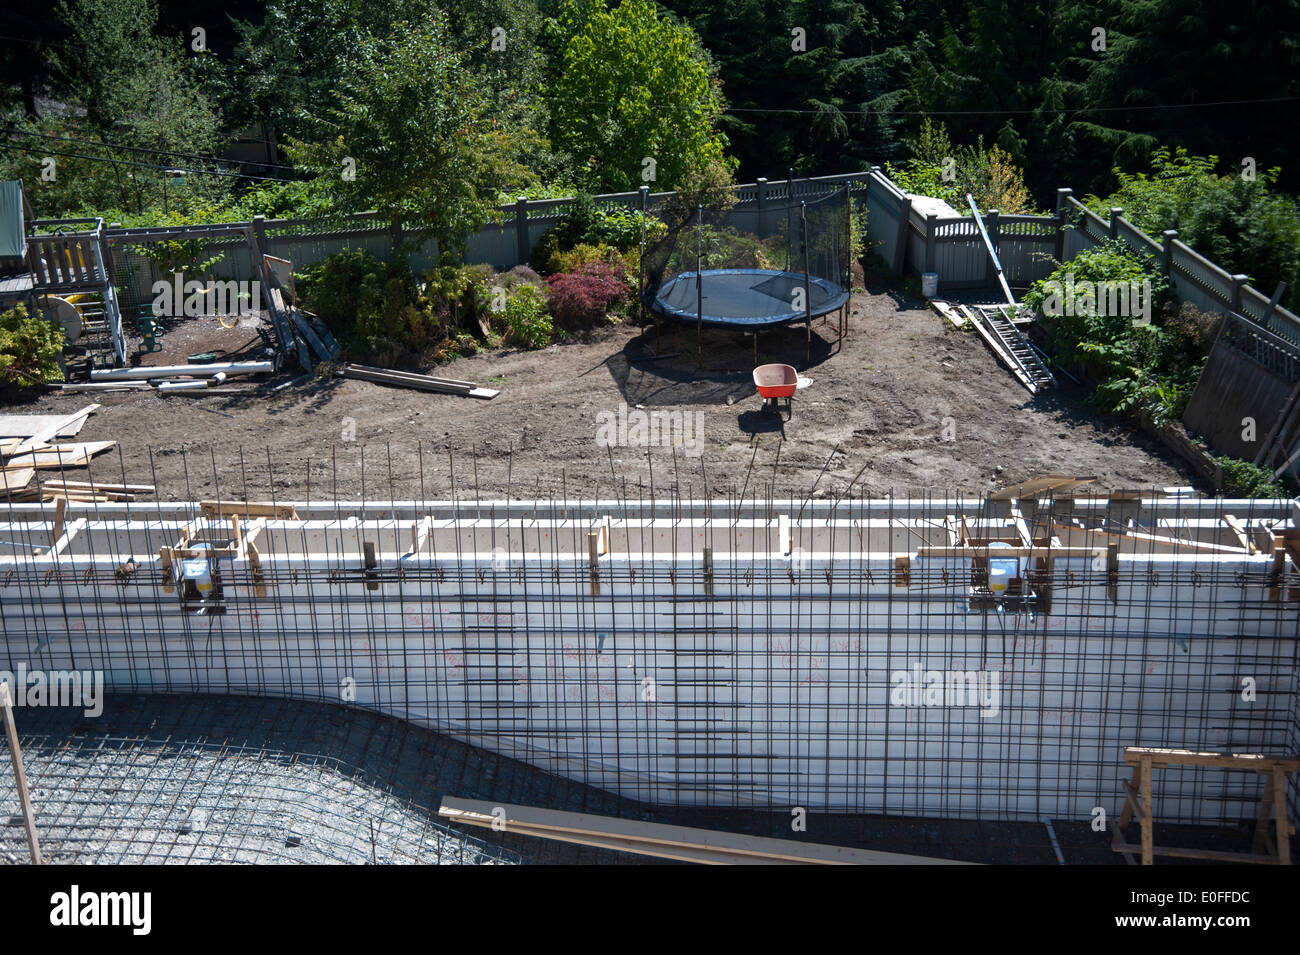 Backyard pool being built with rebar lining installed - Stock Image